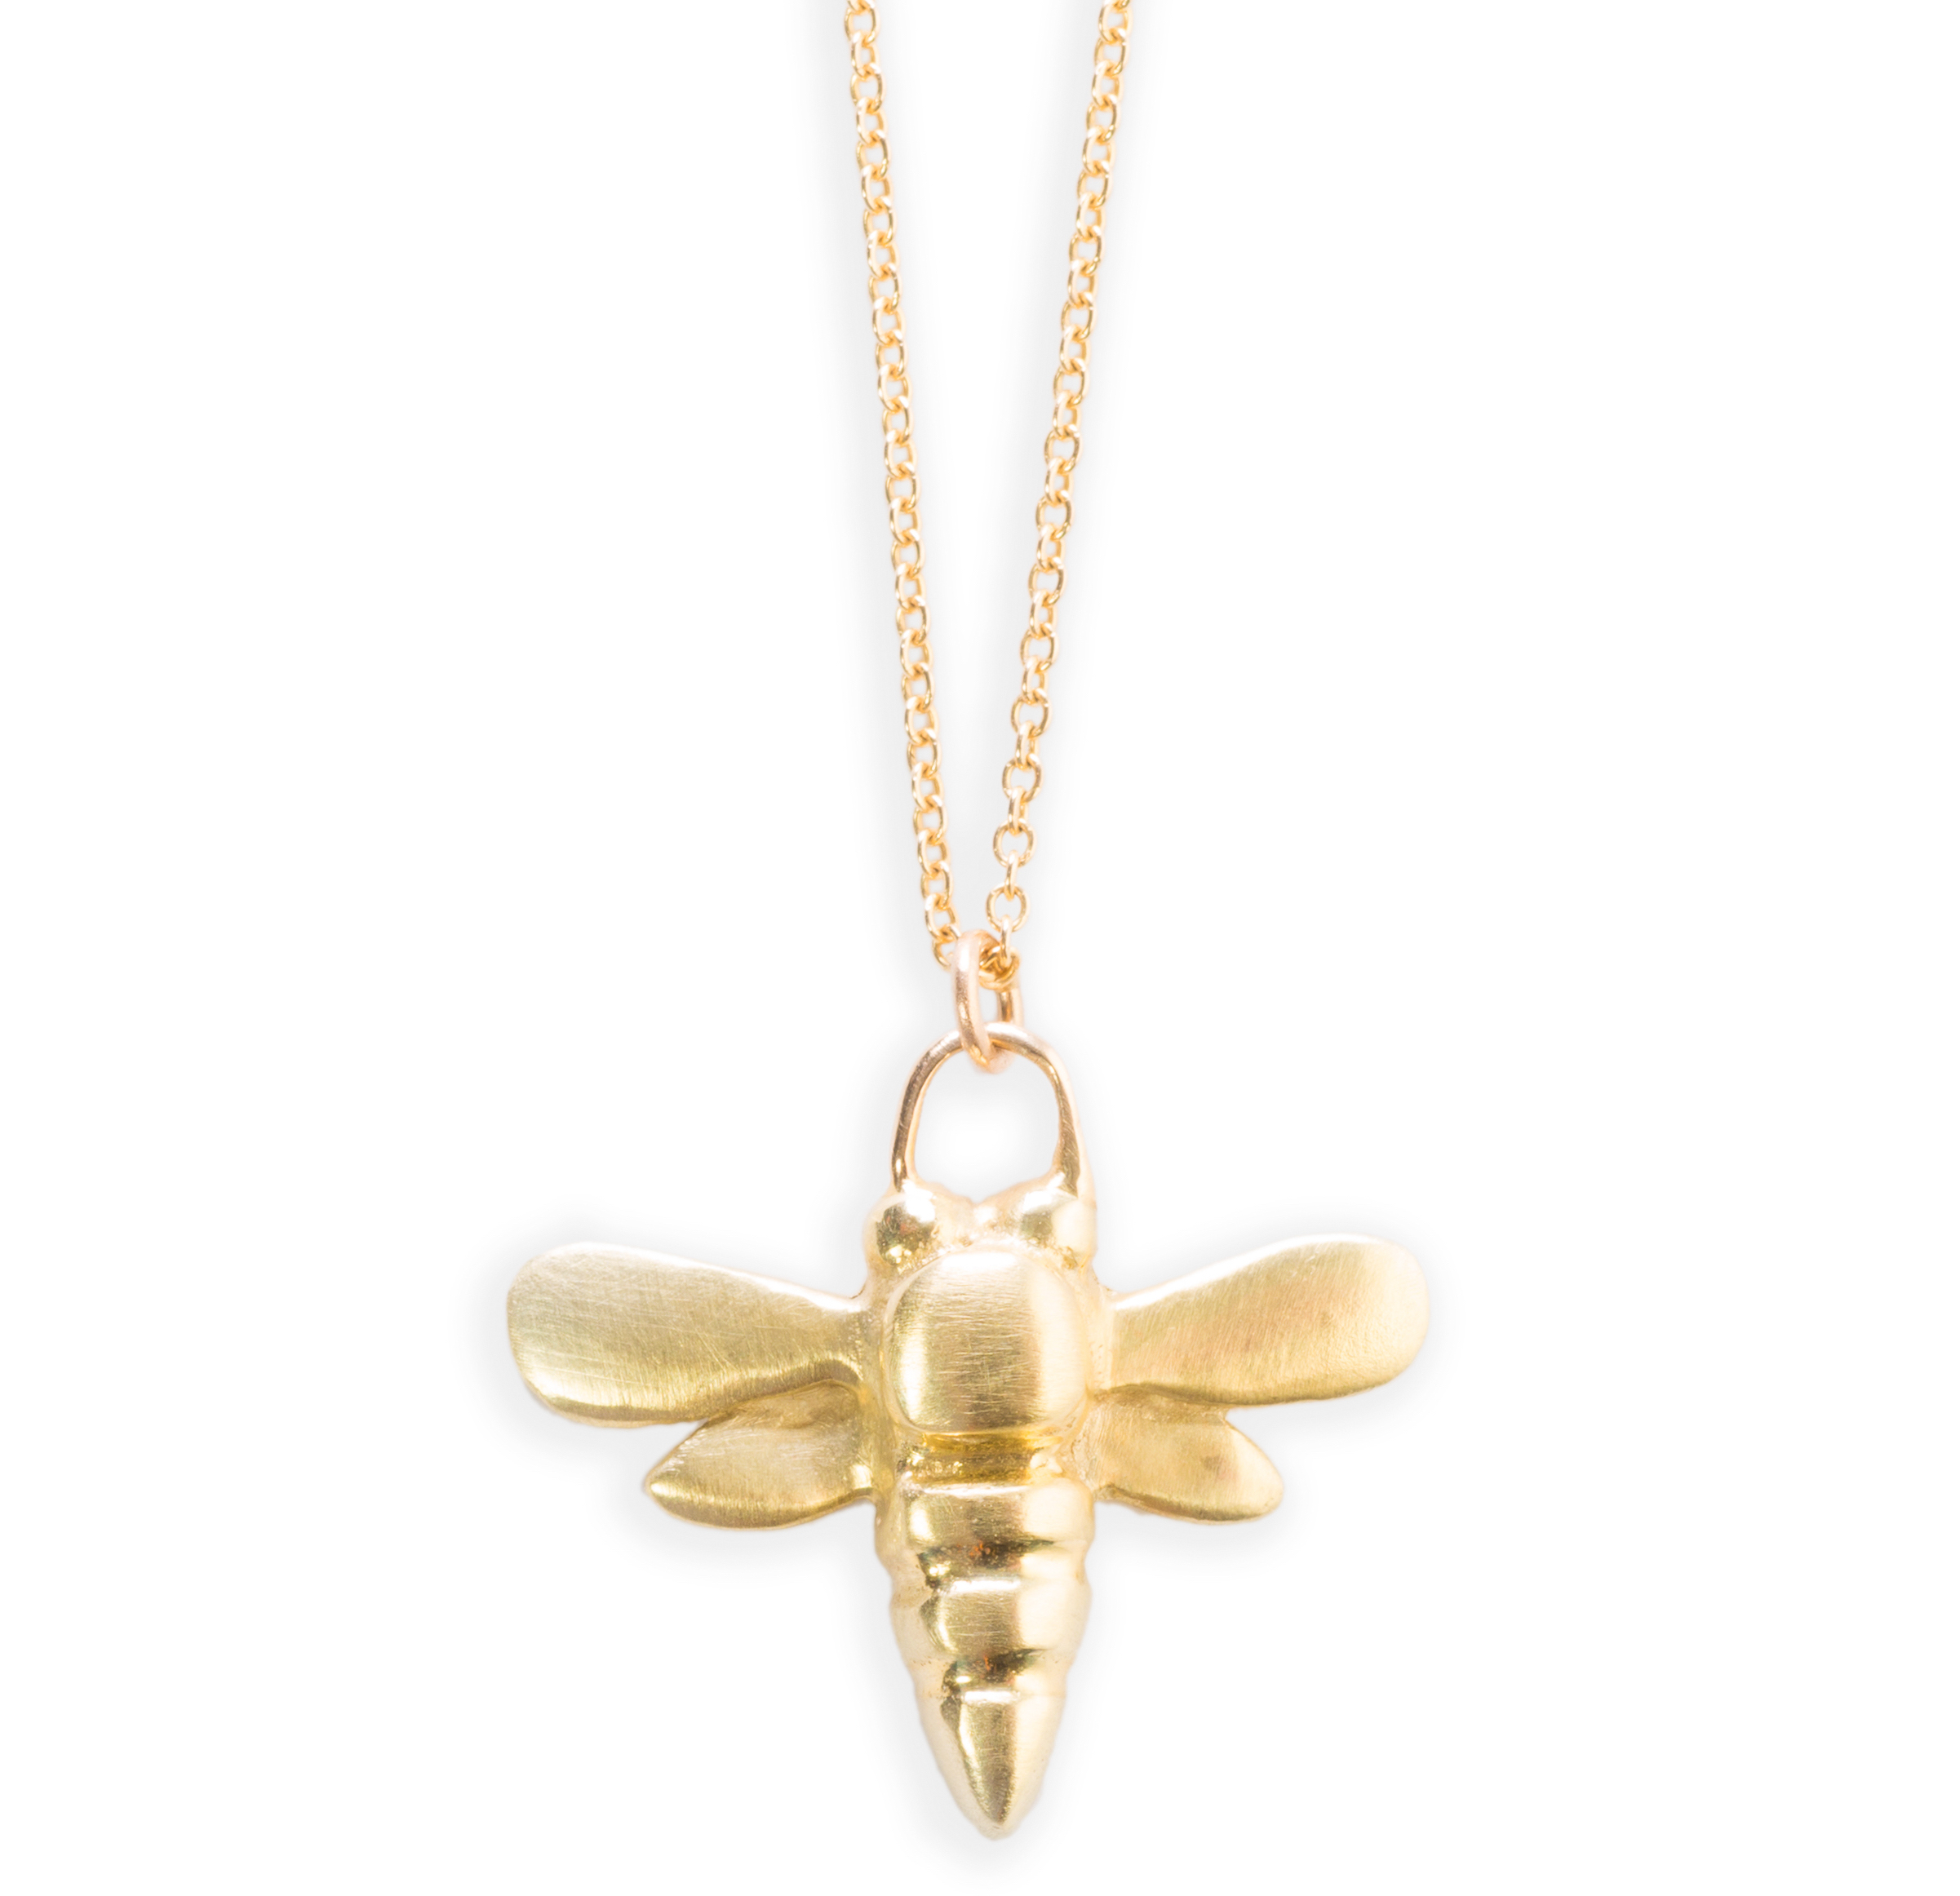 Judi Powers honey bee necklace | JCK On Your Market